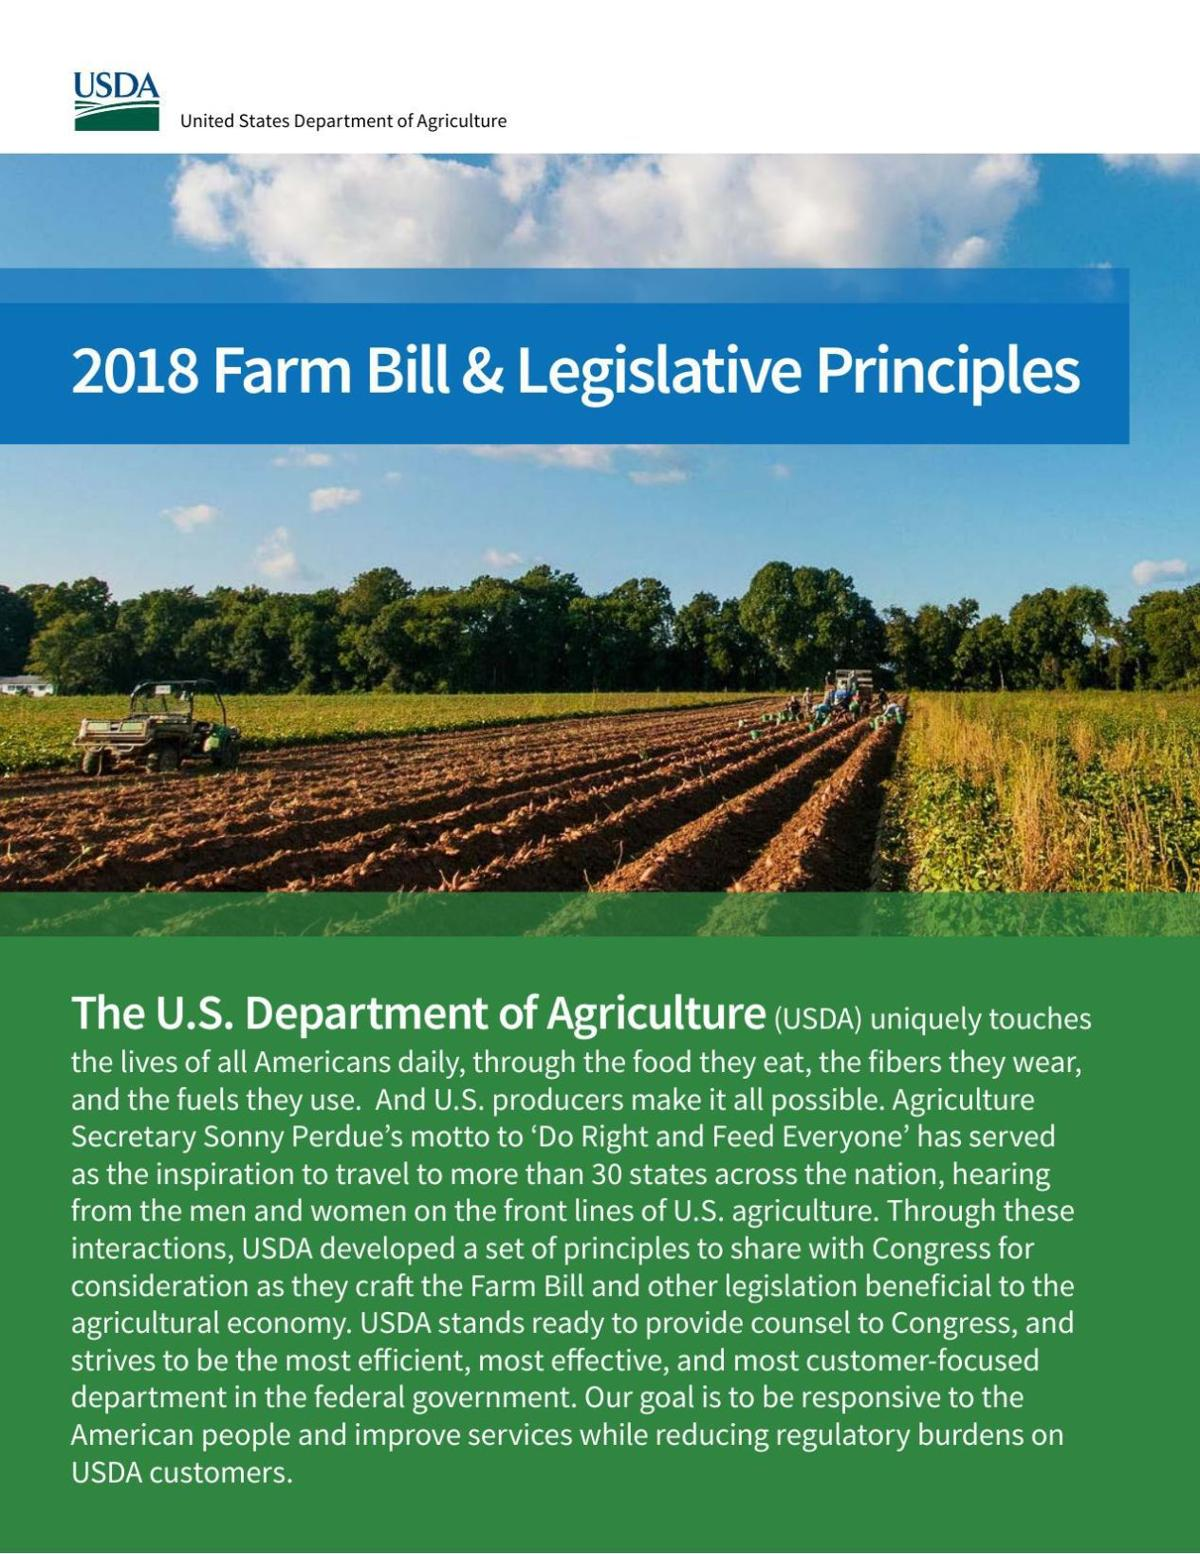 USDA: 2018 Farm Bill and Legislative Principles